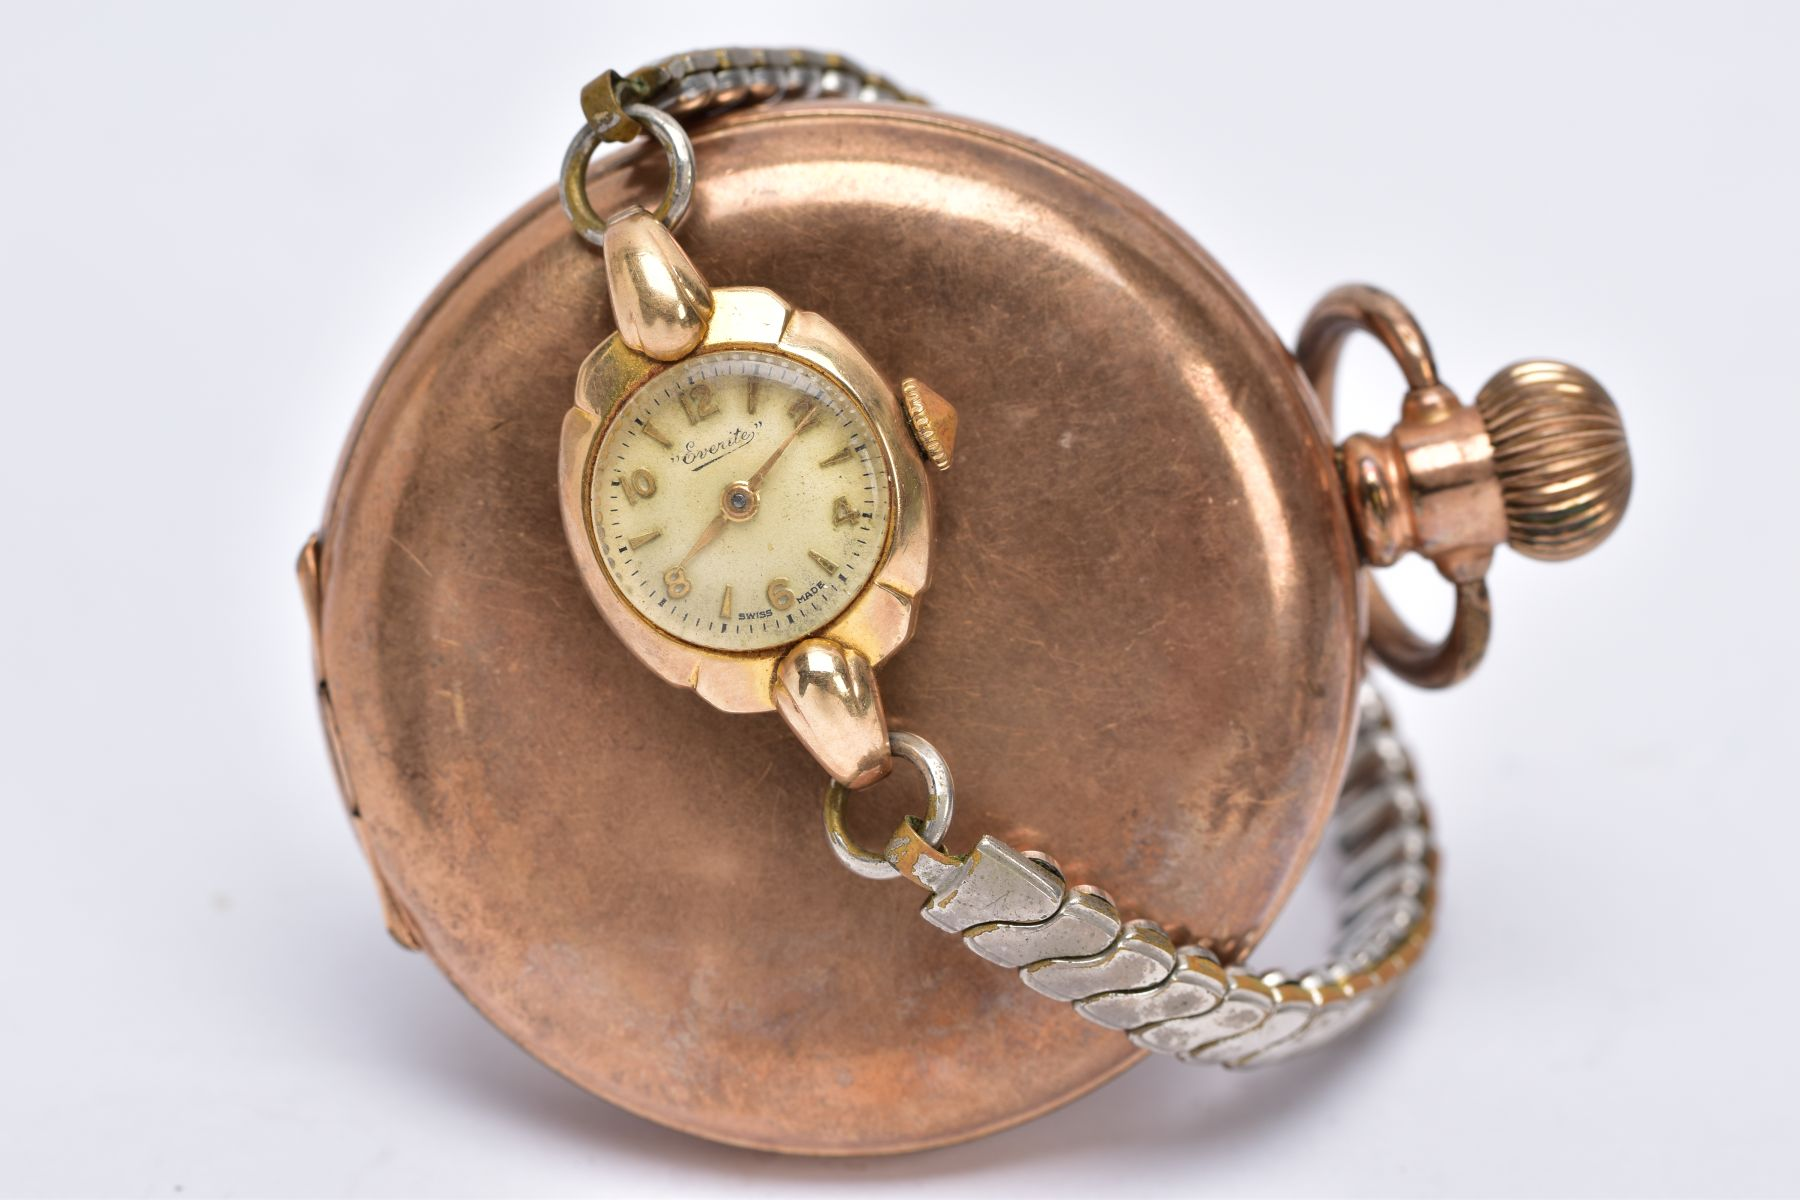 A LADIES 9CT GOLD CASED WRISTWATCH AND A GOLD PLATED POCKET WATCH, the ladies wristwatch with a - Image 2 of 5